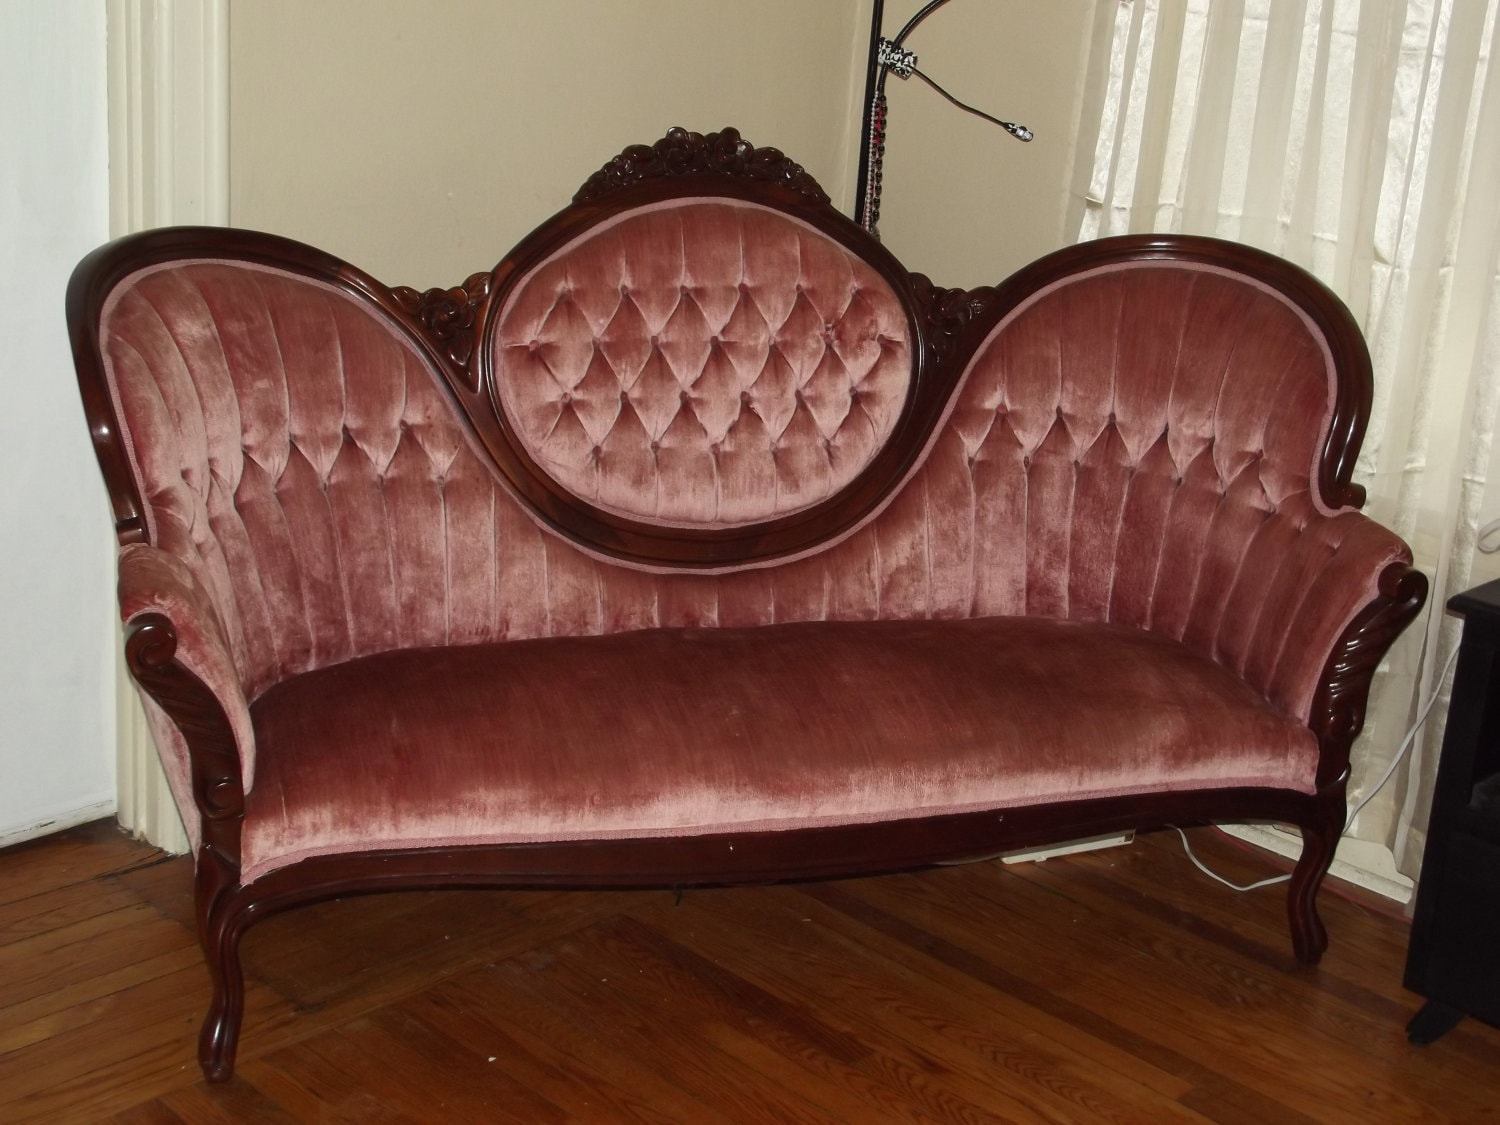 Victorian couch Antique loveseat styles